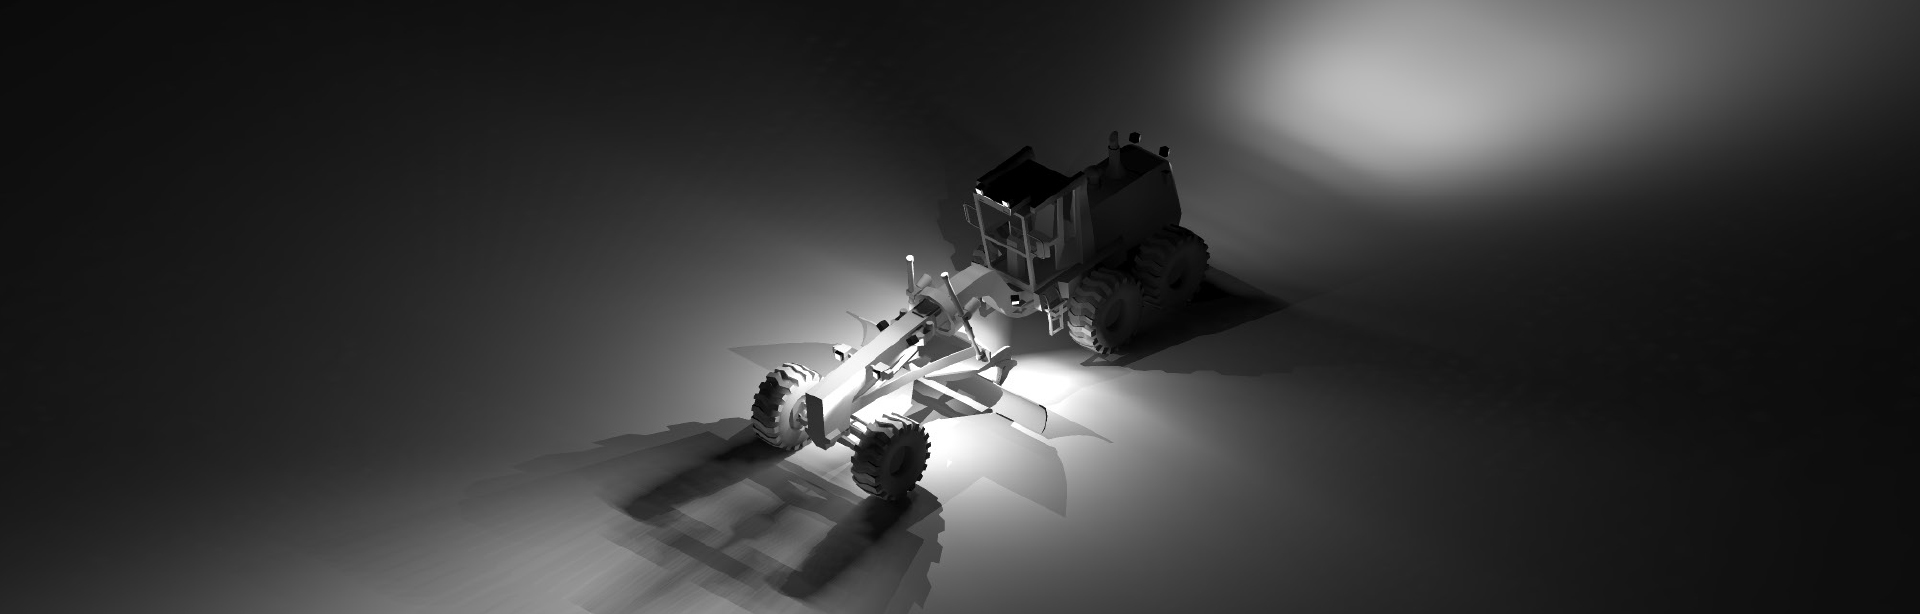 This Lighting Design Simulation Report shows how Coolon CP9 LED Floodlight improves the light output of a Komatsu GD825A motor grader.